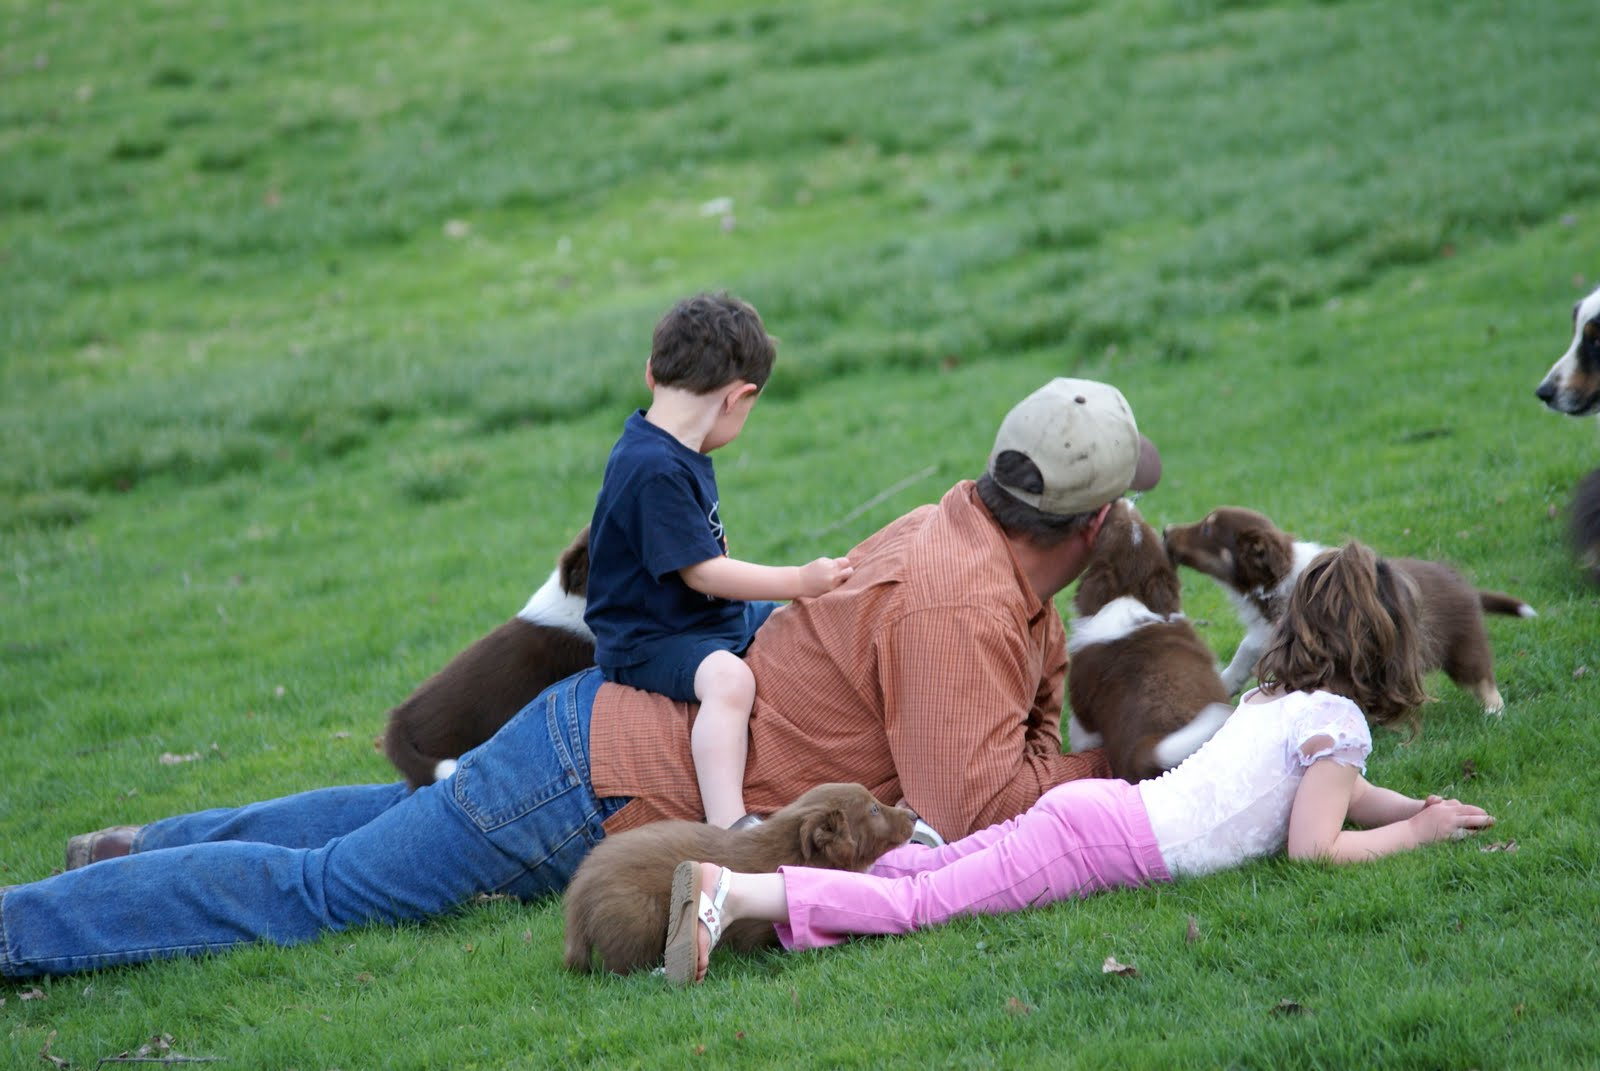 Life at Goodness Grows Farm: Where did those days go?